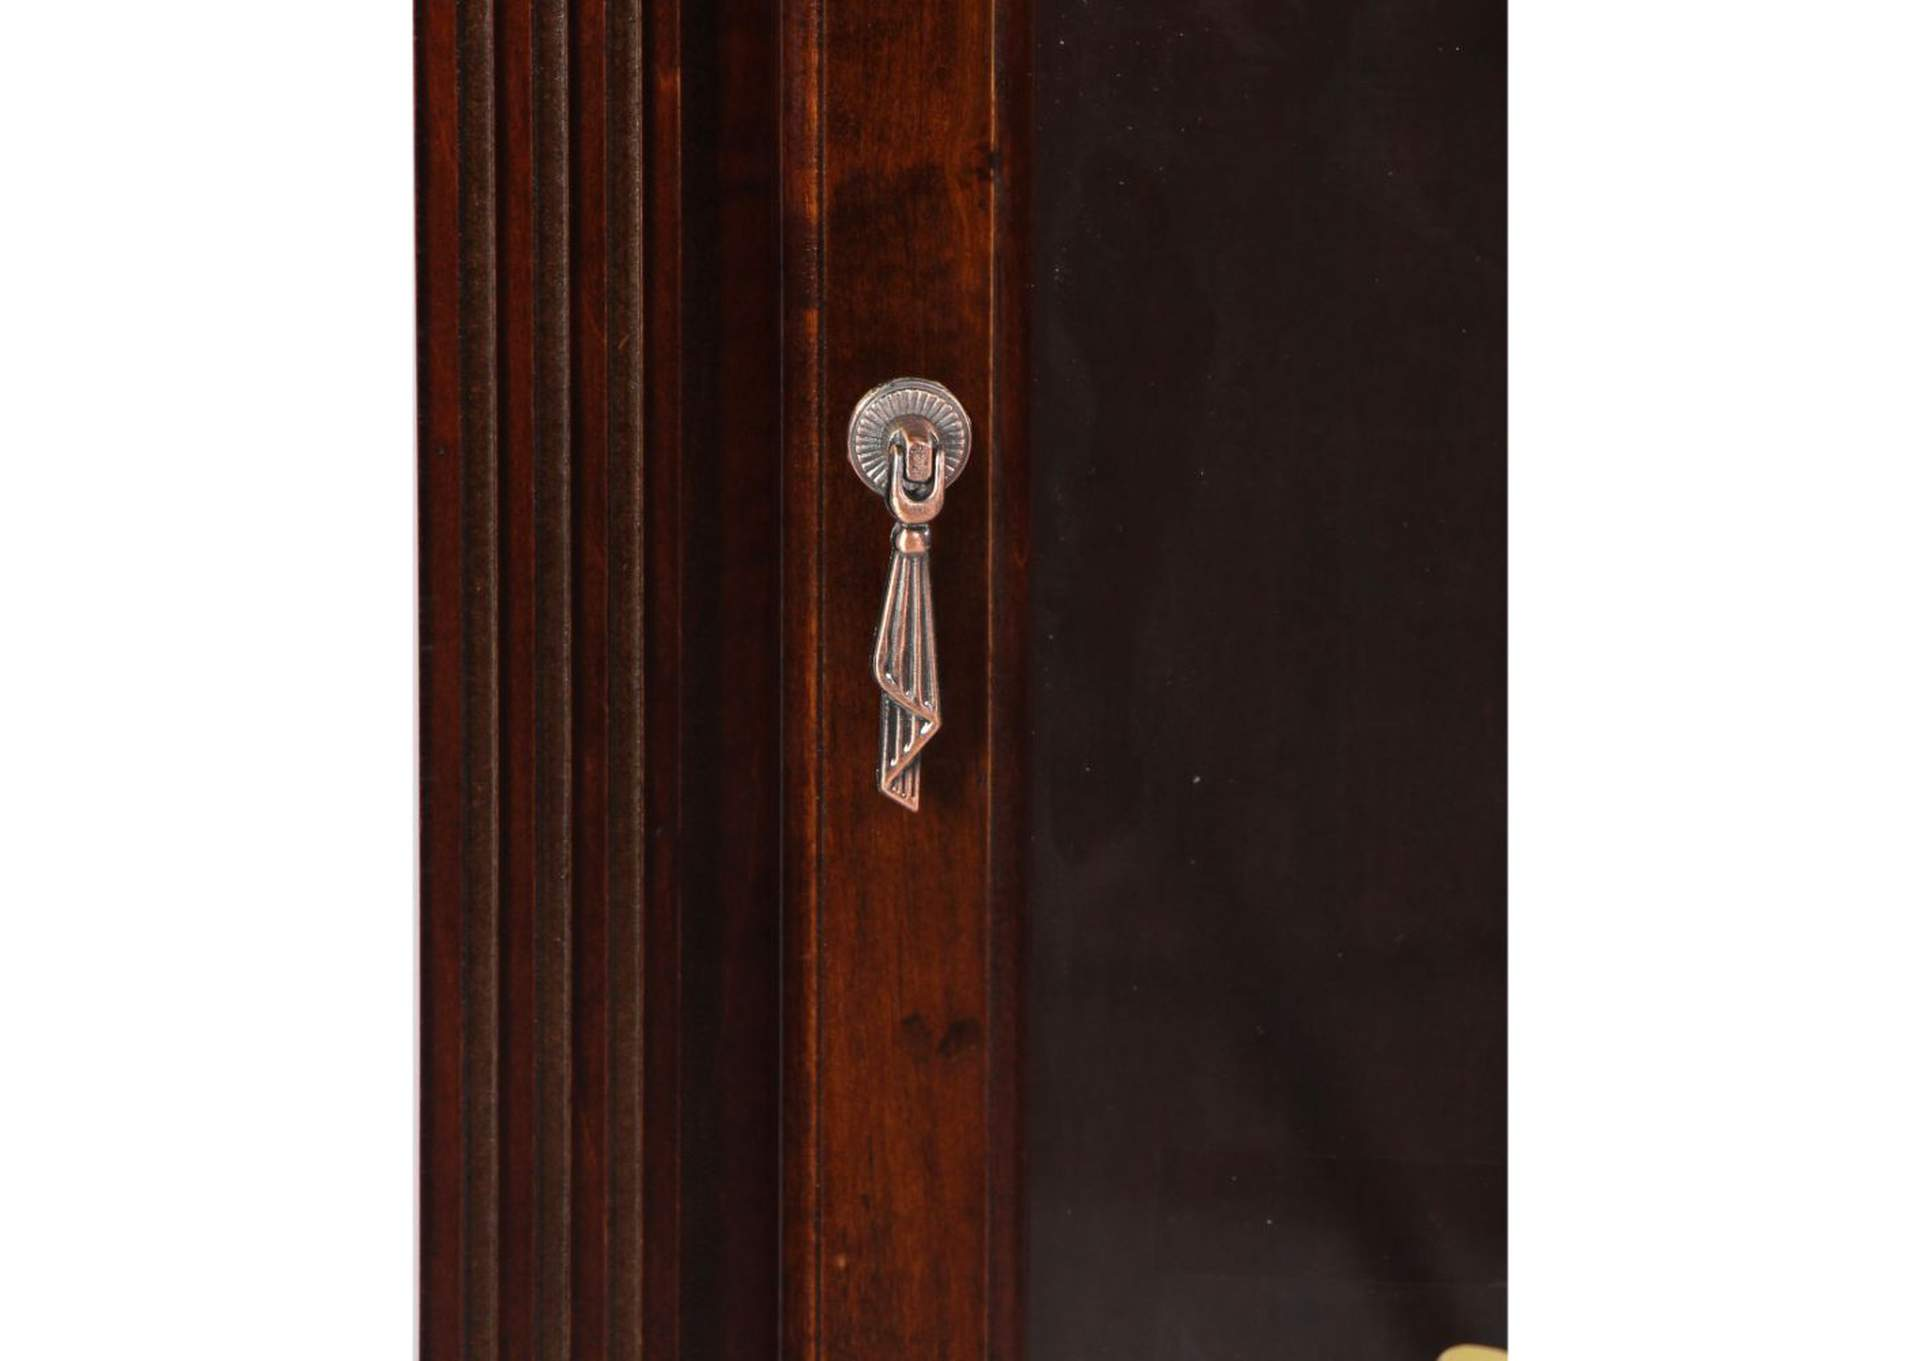 Sebastian Walnut Grandfather Clock,Acme